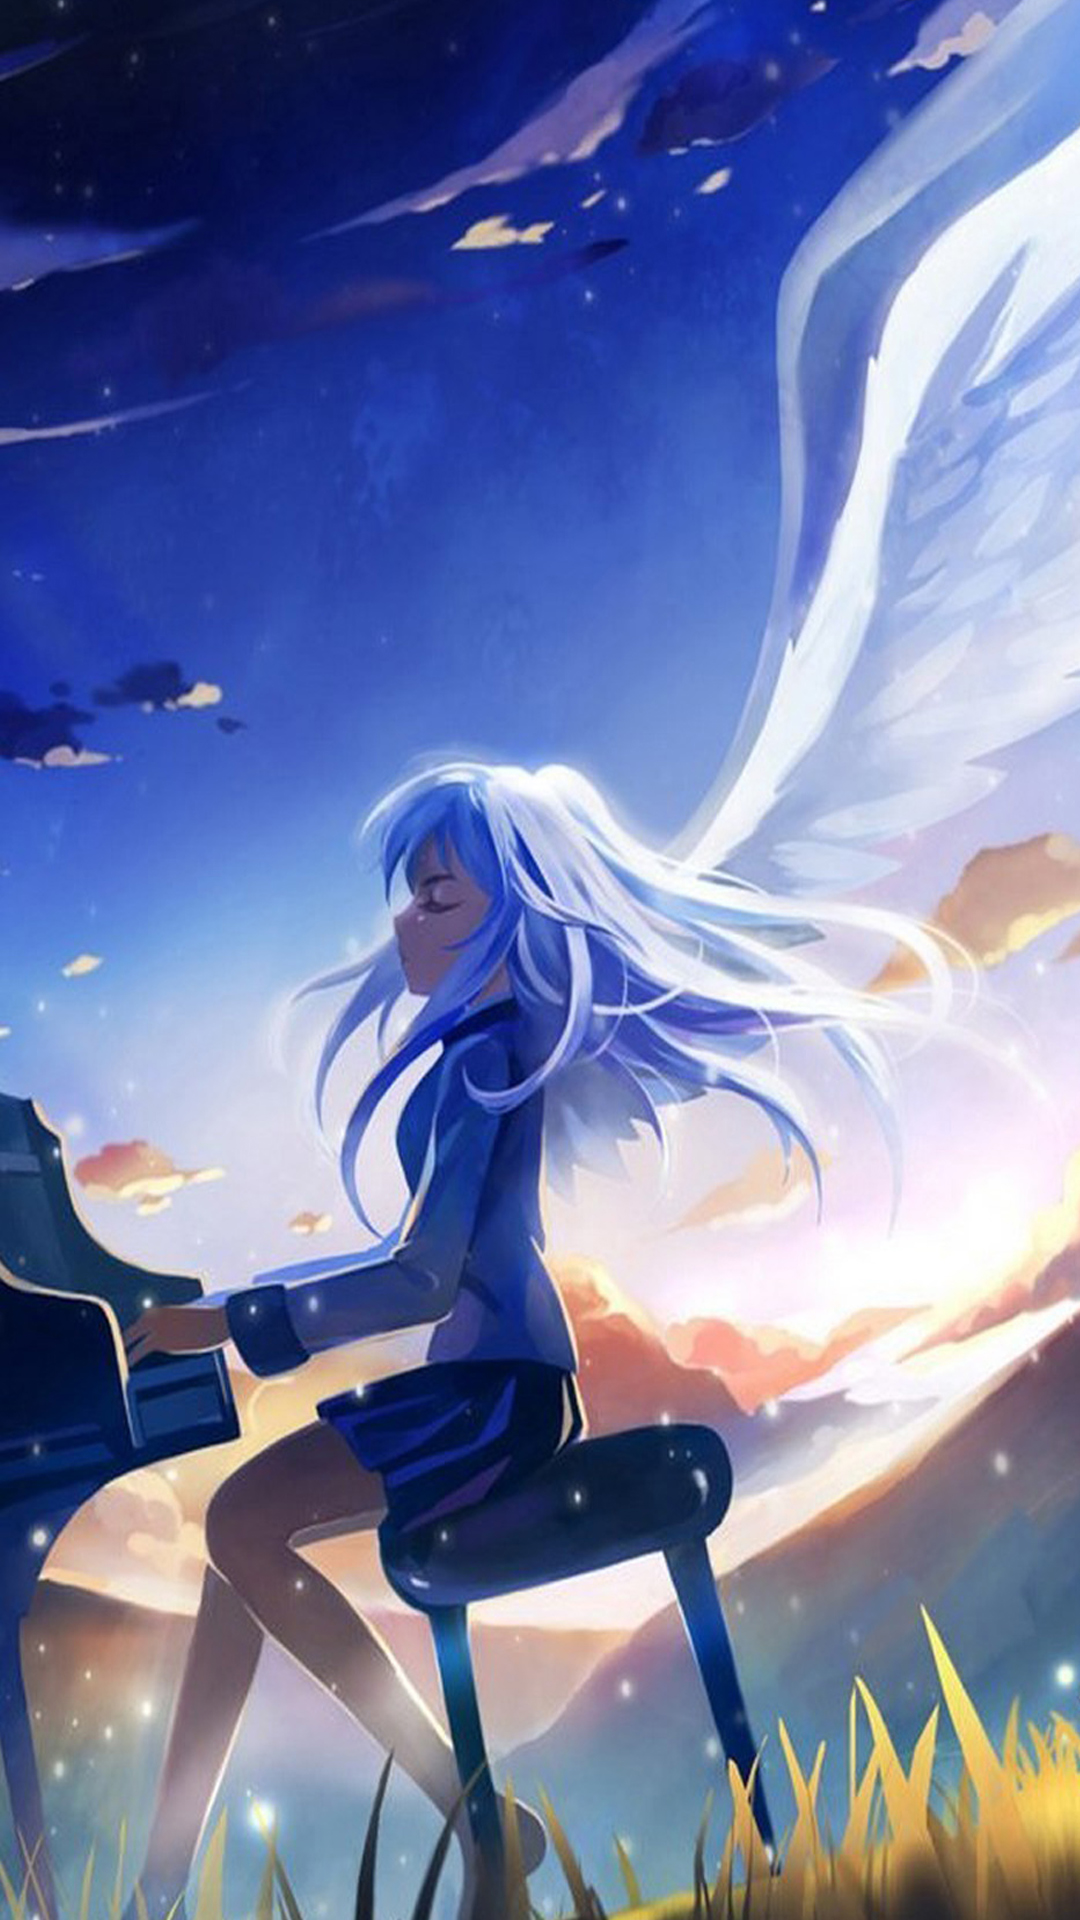 piano wallpaper angel beats wallpapers hd anime 1080x1920